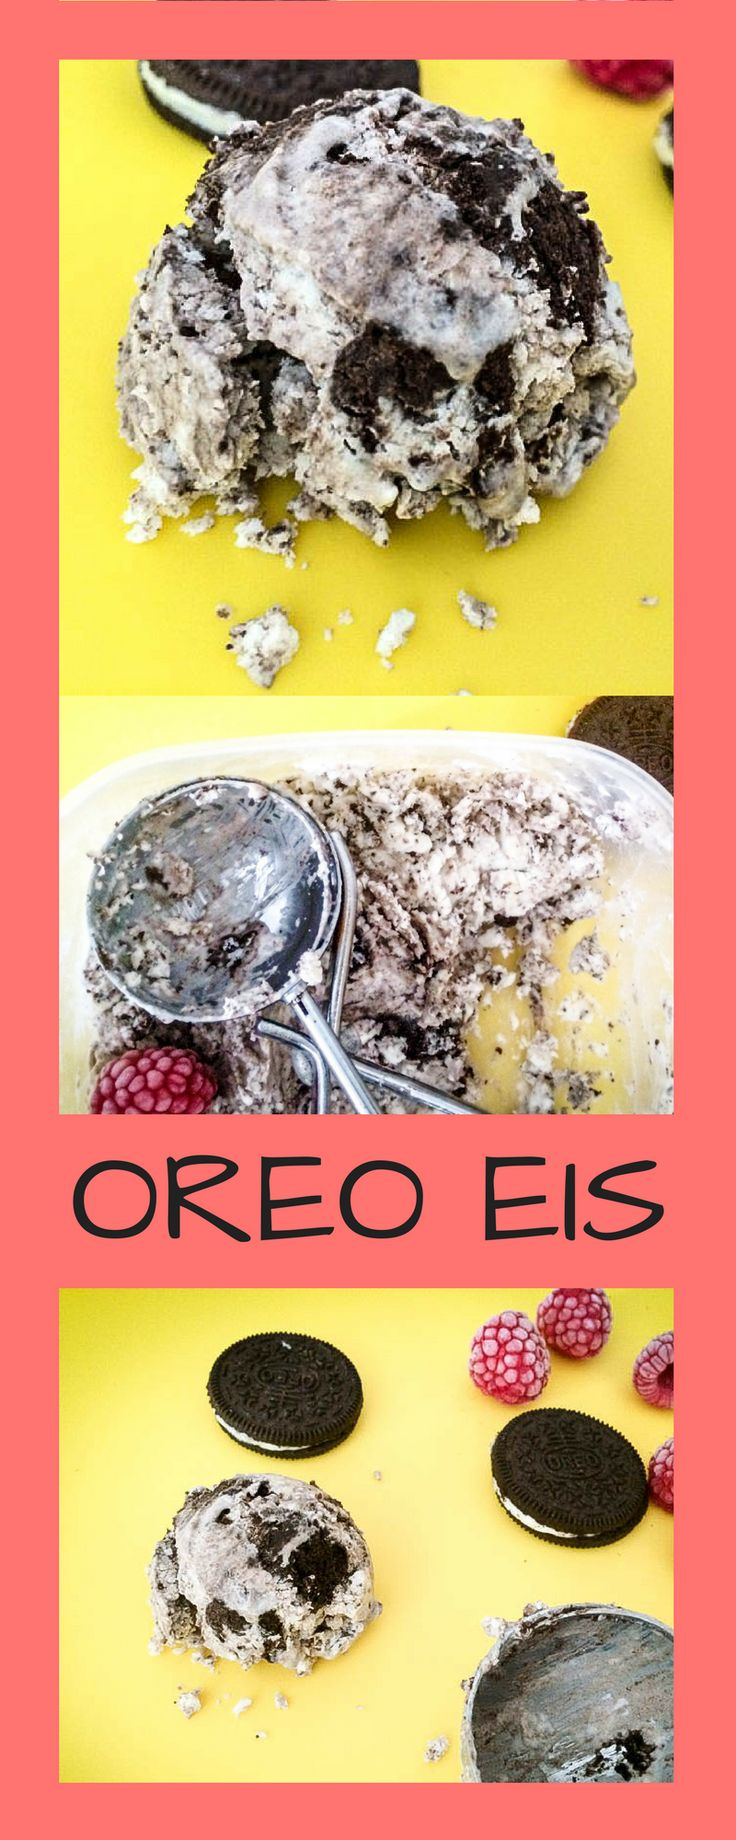 #oreo #Eis #Icecream #Oreoeis